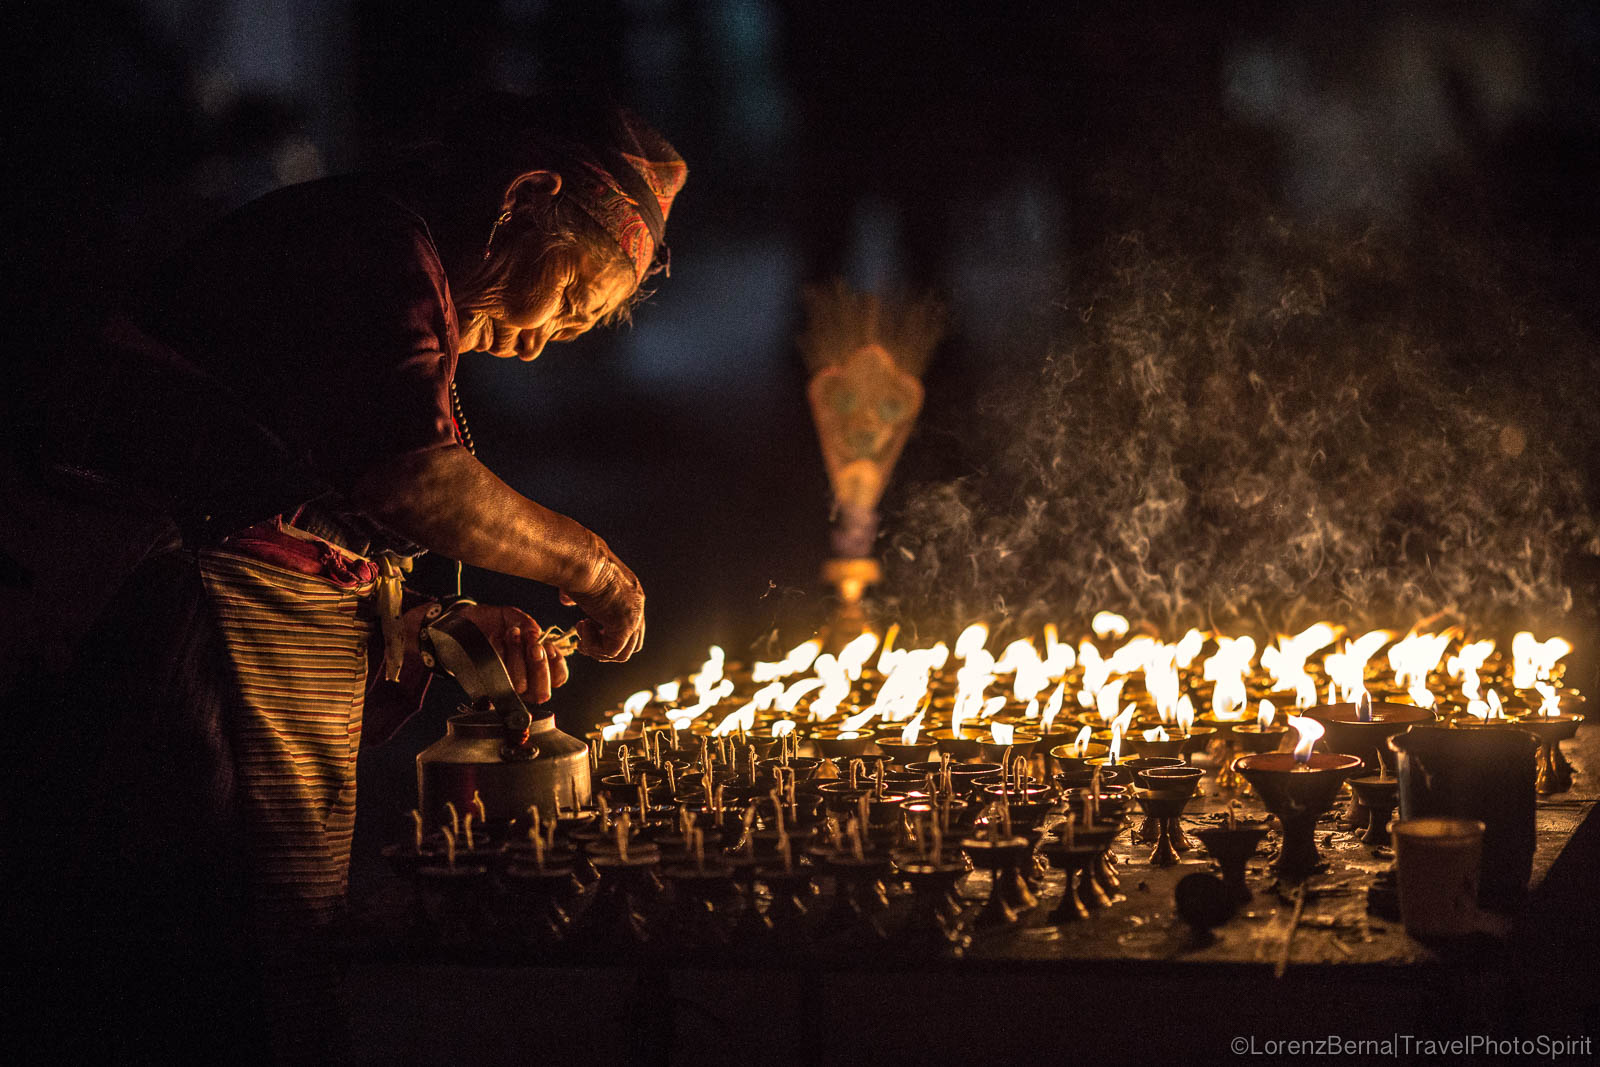 Tibetan woman lighting butter candles in Boudhanath quarter, Kathmandu - Nepal Travel Photography by Lorenz Berna